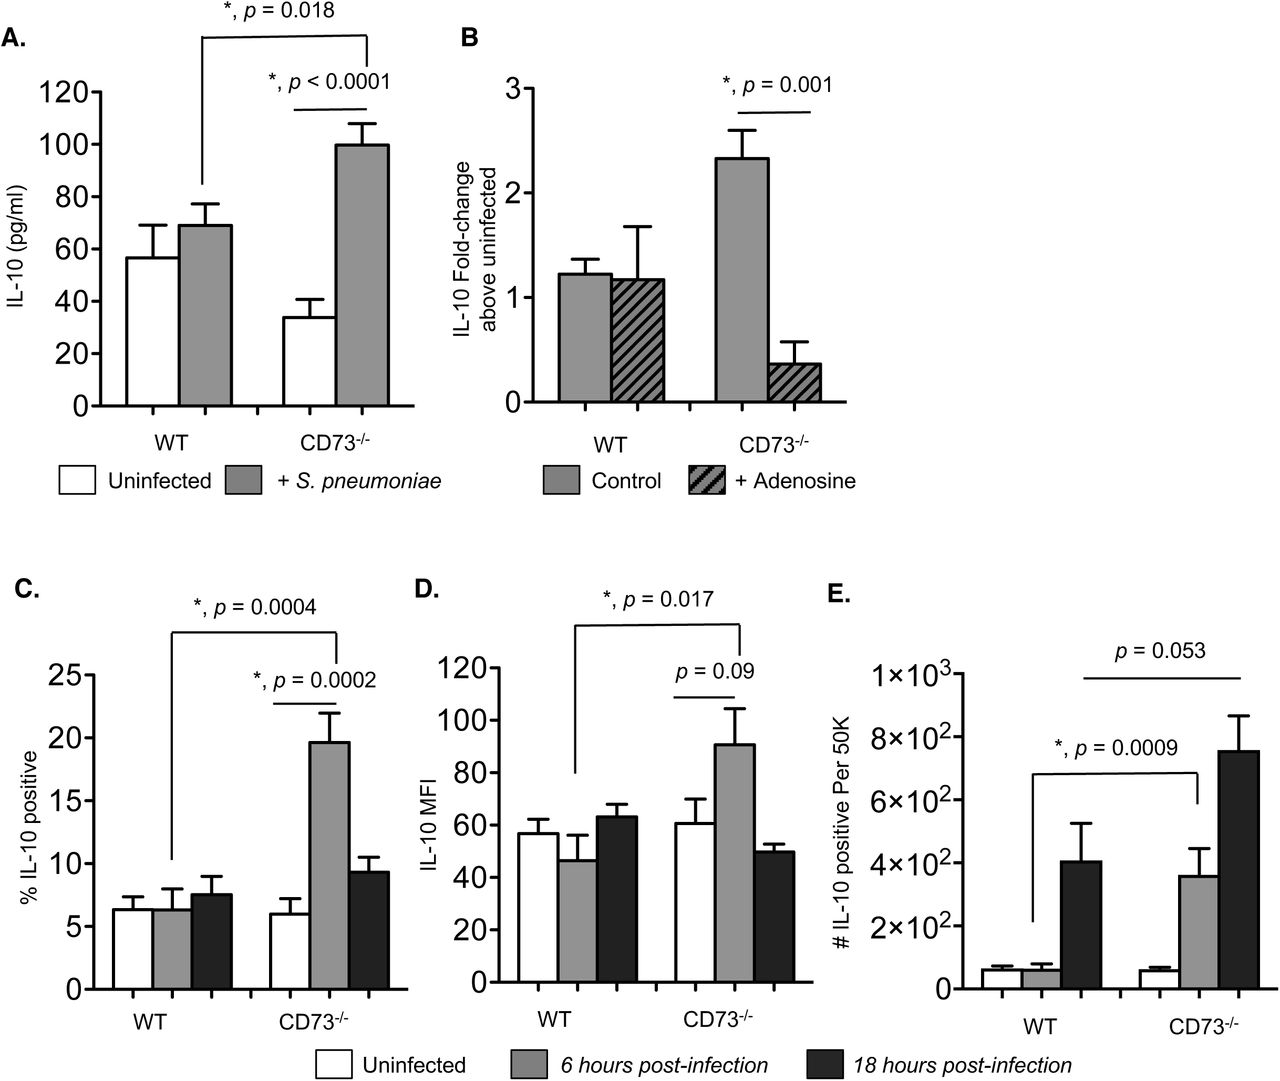 CD73 inhibits IL-10 production from PMNs following pneumococcal infection. (A) PMNs from the indicated mouse strains were incubated for 45 minutes at 37°C with S. pneumoniae pre-opsonized with homologous sera or mock treated with buffer and homologous sera (uninfected) in vitro . The supernatants were then collected and assayed for IL-10 production by ELISA. (B) PBS control or adenosine (100μM) were added to the PMNs 30 minutes prior to in vitro infection and the fold-change in IL-10 production was calculated by dividing the values of infected reactions by uninfected controls for each condition. Data were pooled from three separate experiments (n=3 mice) with each condition tested in triplicate per experiment. Asterisks indicate significant differences determined by Student's t-test. (C-E) Wild-type C57BL/6 or CD73 -/- mice were mock-infected or i.t challenged with 5 x 10 5 CFU of S. pneumoniae . Six (grey bars) and 18 hours (black bars) following challenge, (C) the percentage of IL-10 producing PMNs (Ly6G+), (D) the mean florescent intensities (MFI) of IL-10 in PMNs (Ly6G+) and (E) the number of IL-10 producing PMNs (Ly6G+) recruited into the lungs were determined by intracellular cytokine staining and flow cytometry (see Materials and Methods). Pooled data are from three separate experiments (n=6-9 mice per strain per time point). Significant differences determined by Student's t-test are indicated by asterisks.